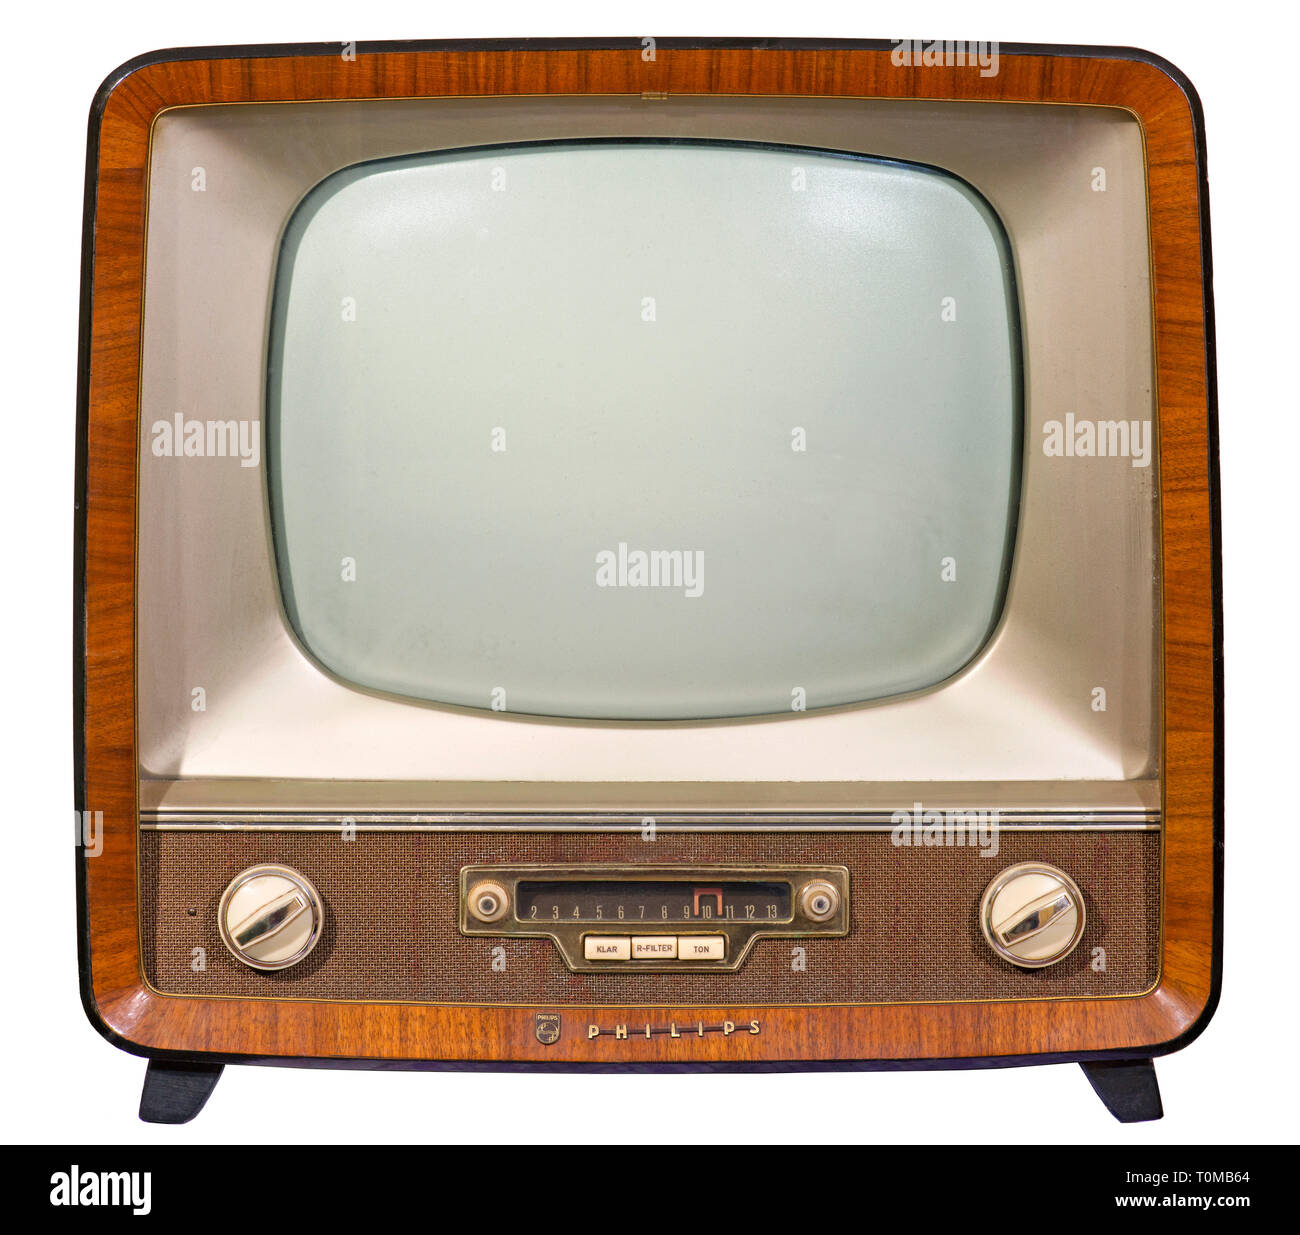 broadcast, television, television set Philips, TV desk receiver Raffäl-Luxus, version 17 TD 230 A, screen diagonal 43 centimeter, retail price 1954: DM 898, Germany, 1958, Additional-Rights-Clearance-Info-Not-Available - Stock Image